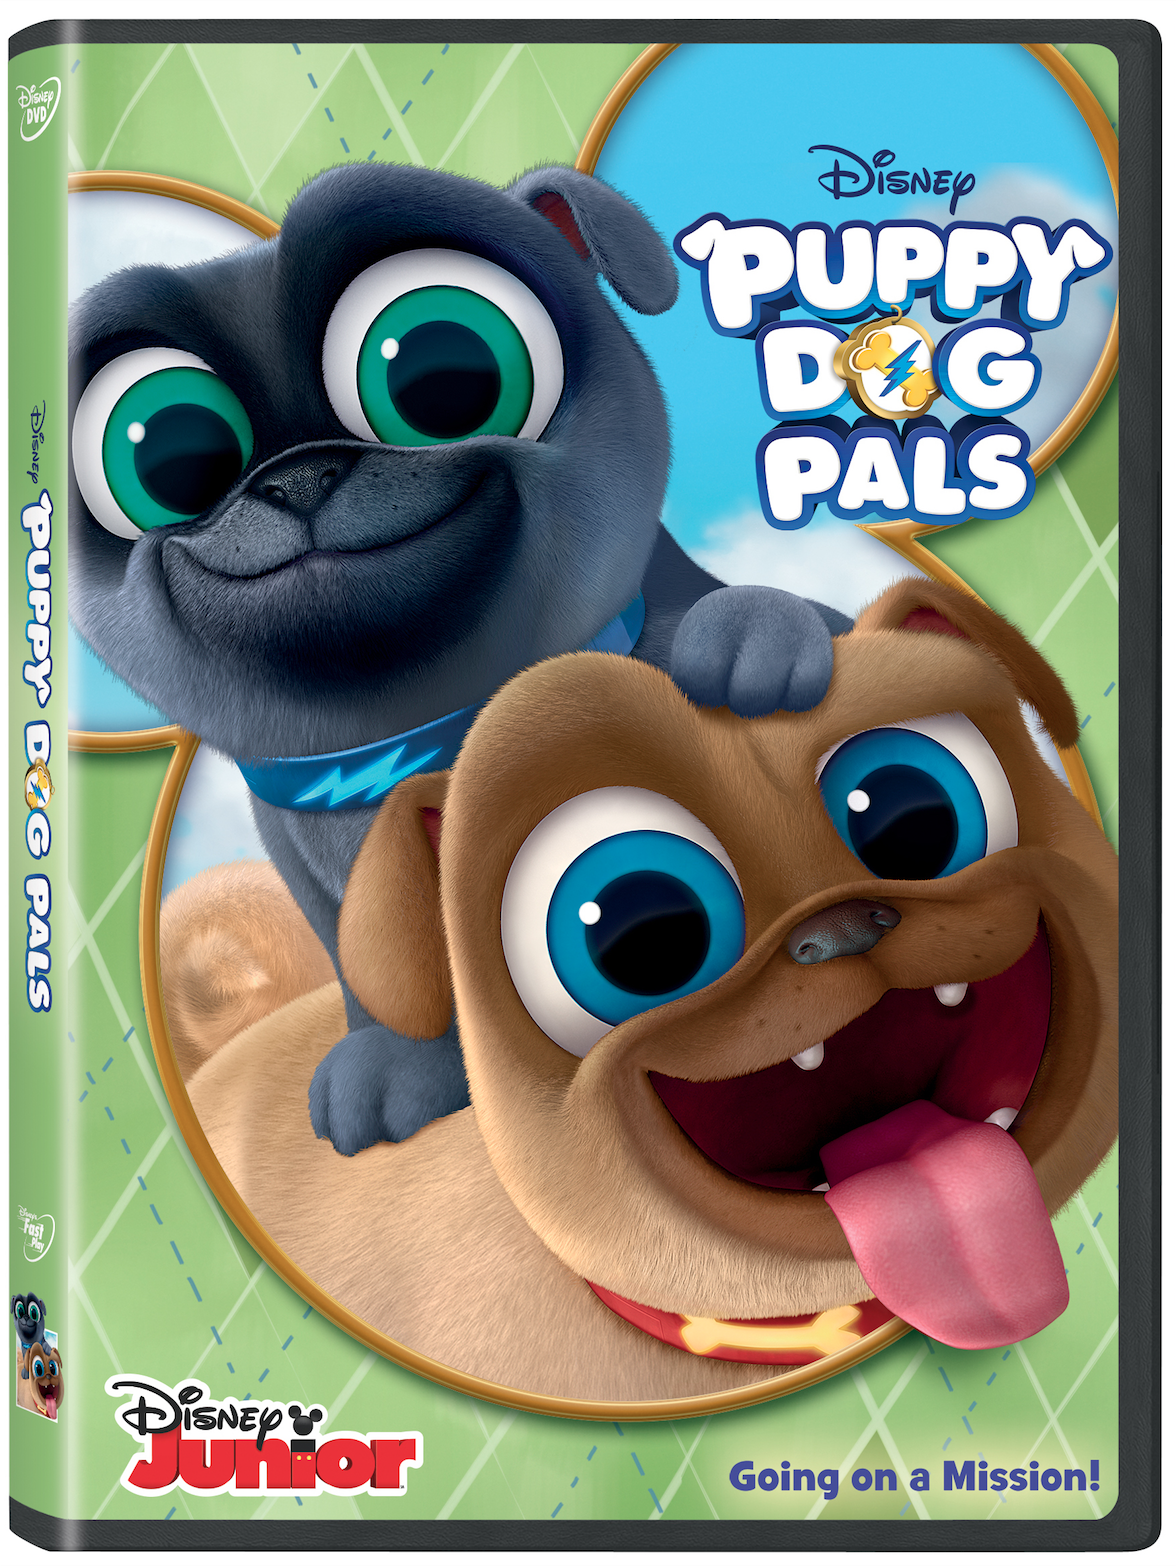 Disney Jr Puppy Dog Pals The Cutest Puppies In Town Are Coming To DVD Just Time For Road Trip Season